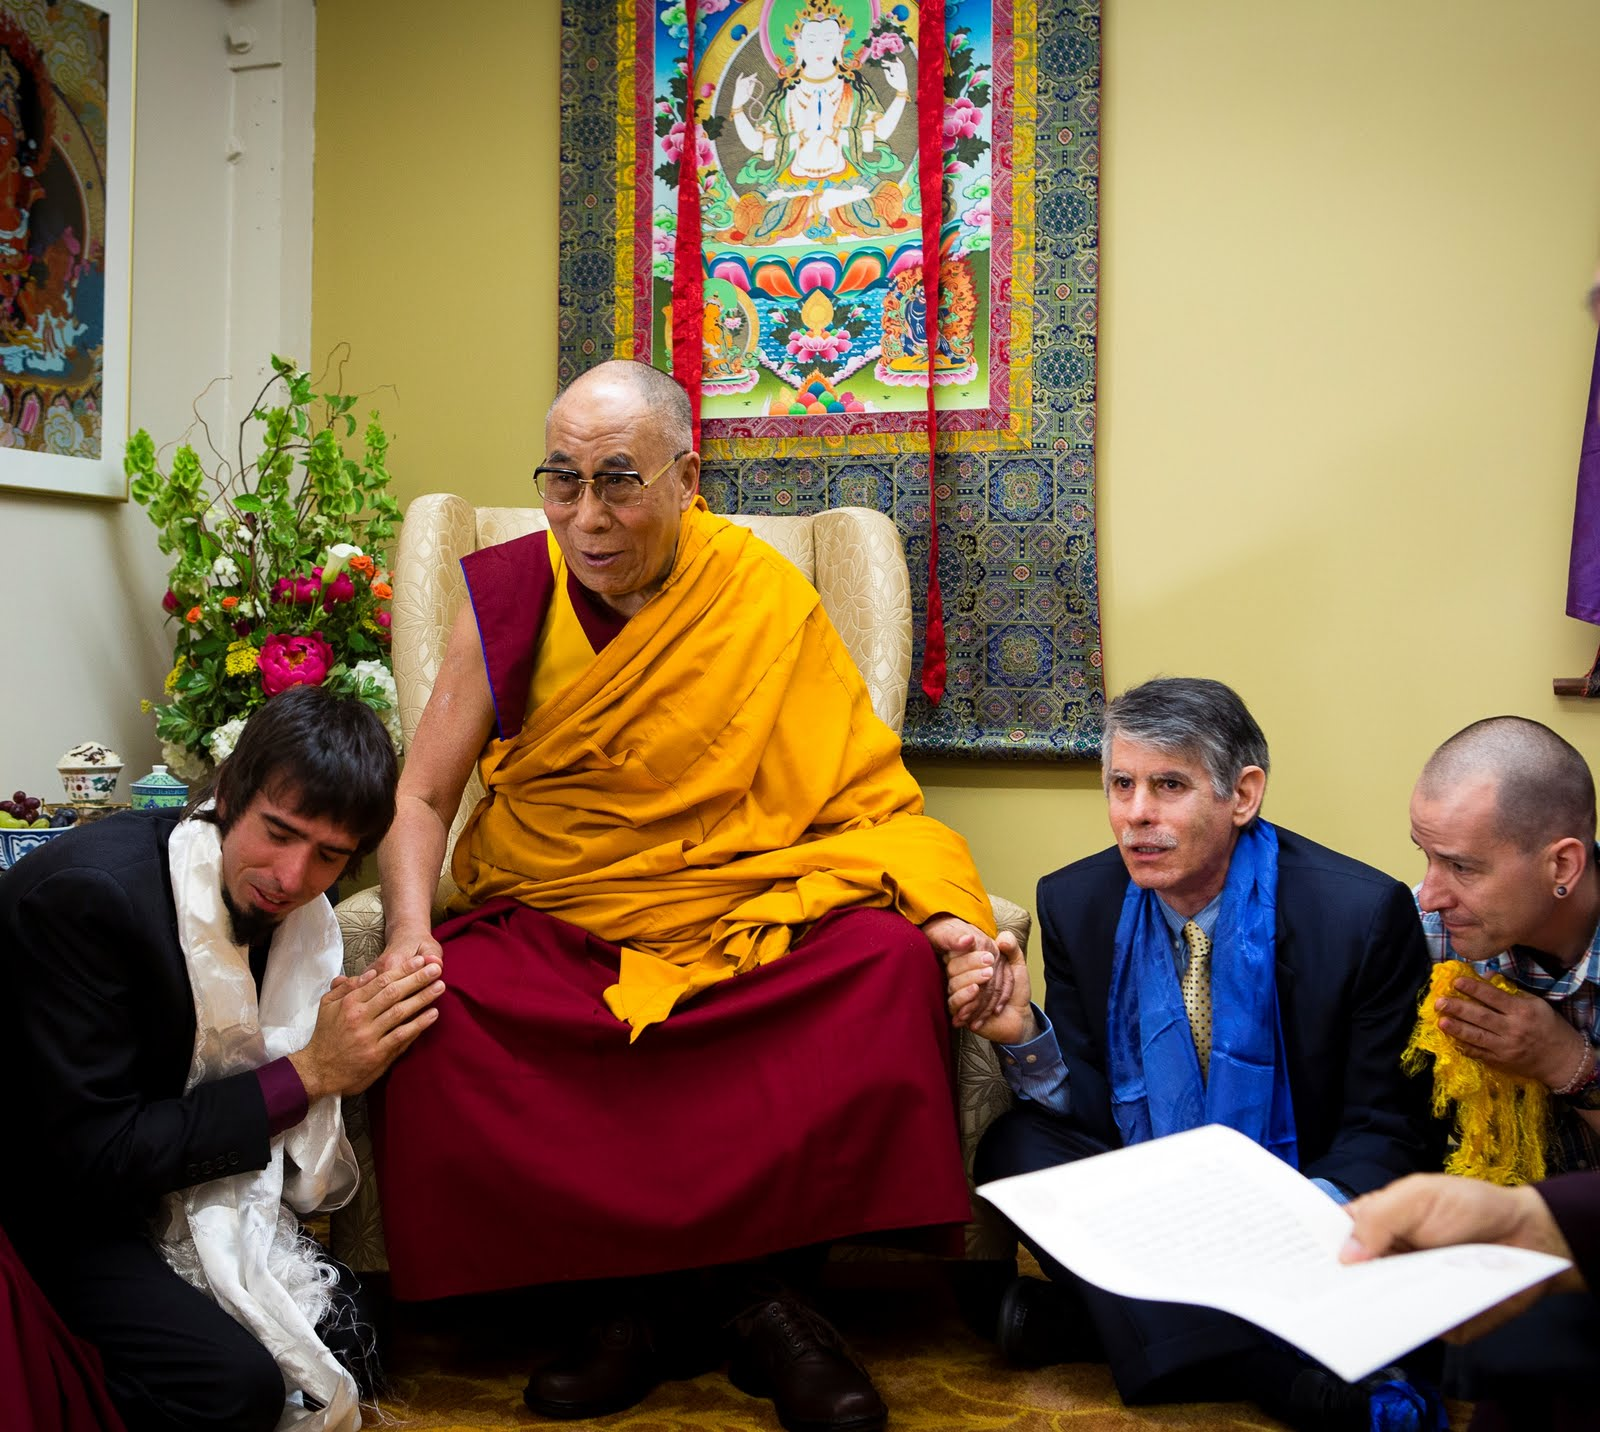 Tenzin Ösel Hita, His Holiness the Dalai Lama, FPMT International Office Director of Operations and Director of FPMT Education Tom Truty. Photo by Leah Nash.